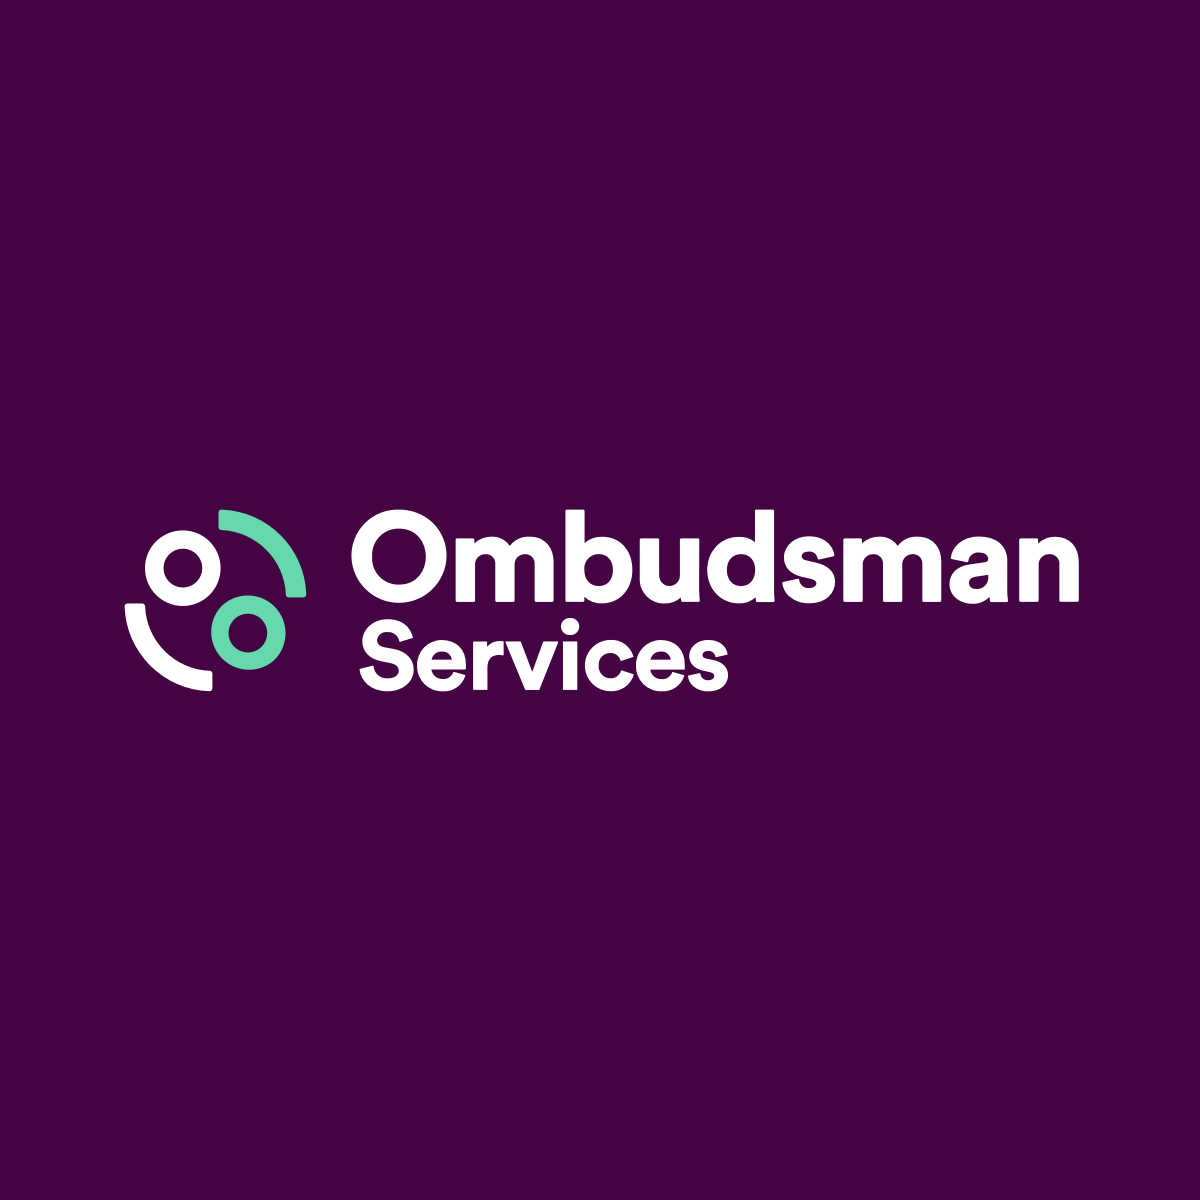 Energy Ombudsman: Here to help with gas & electricity complaints